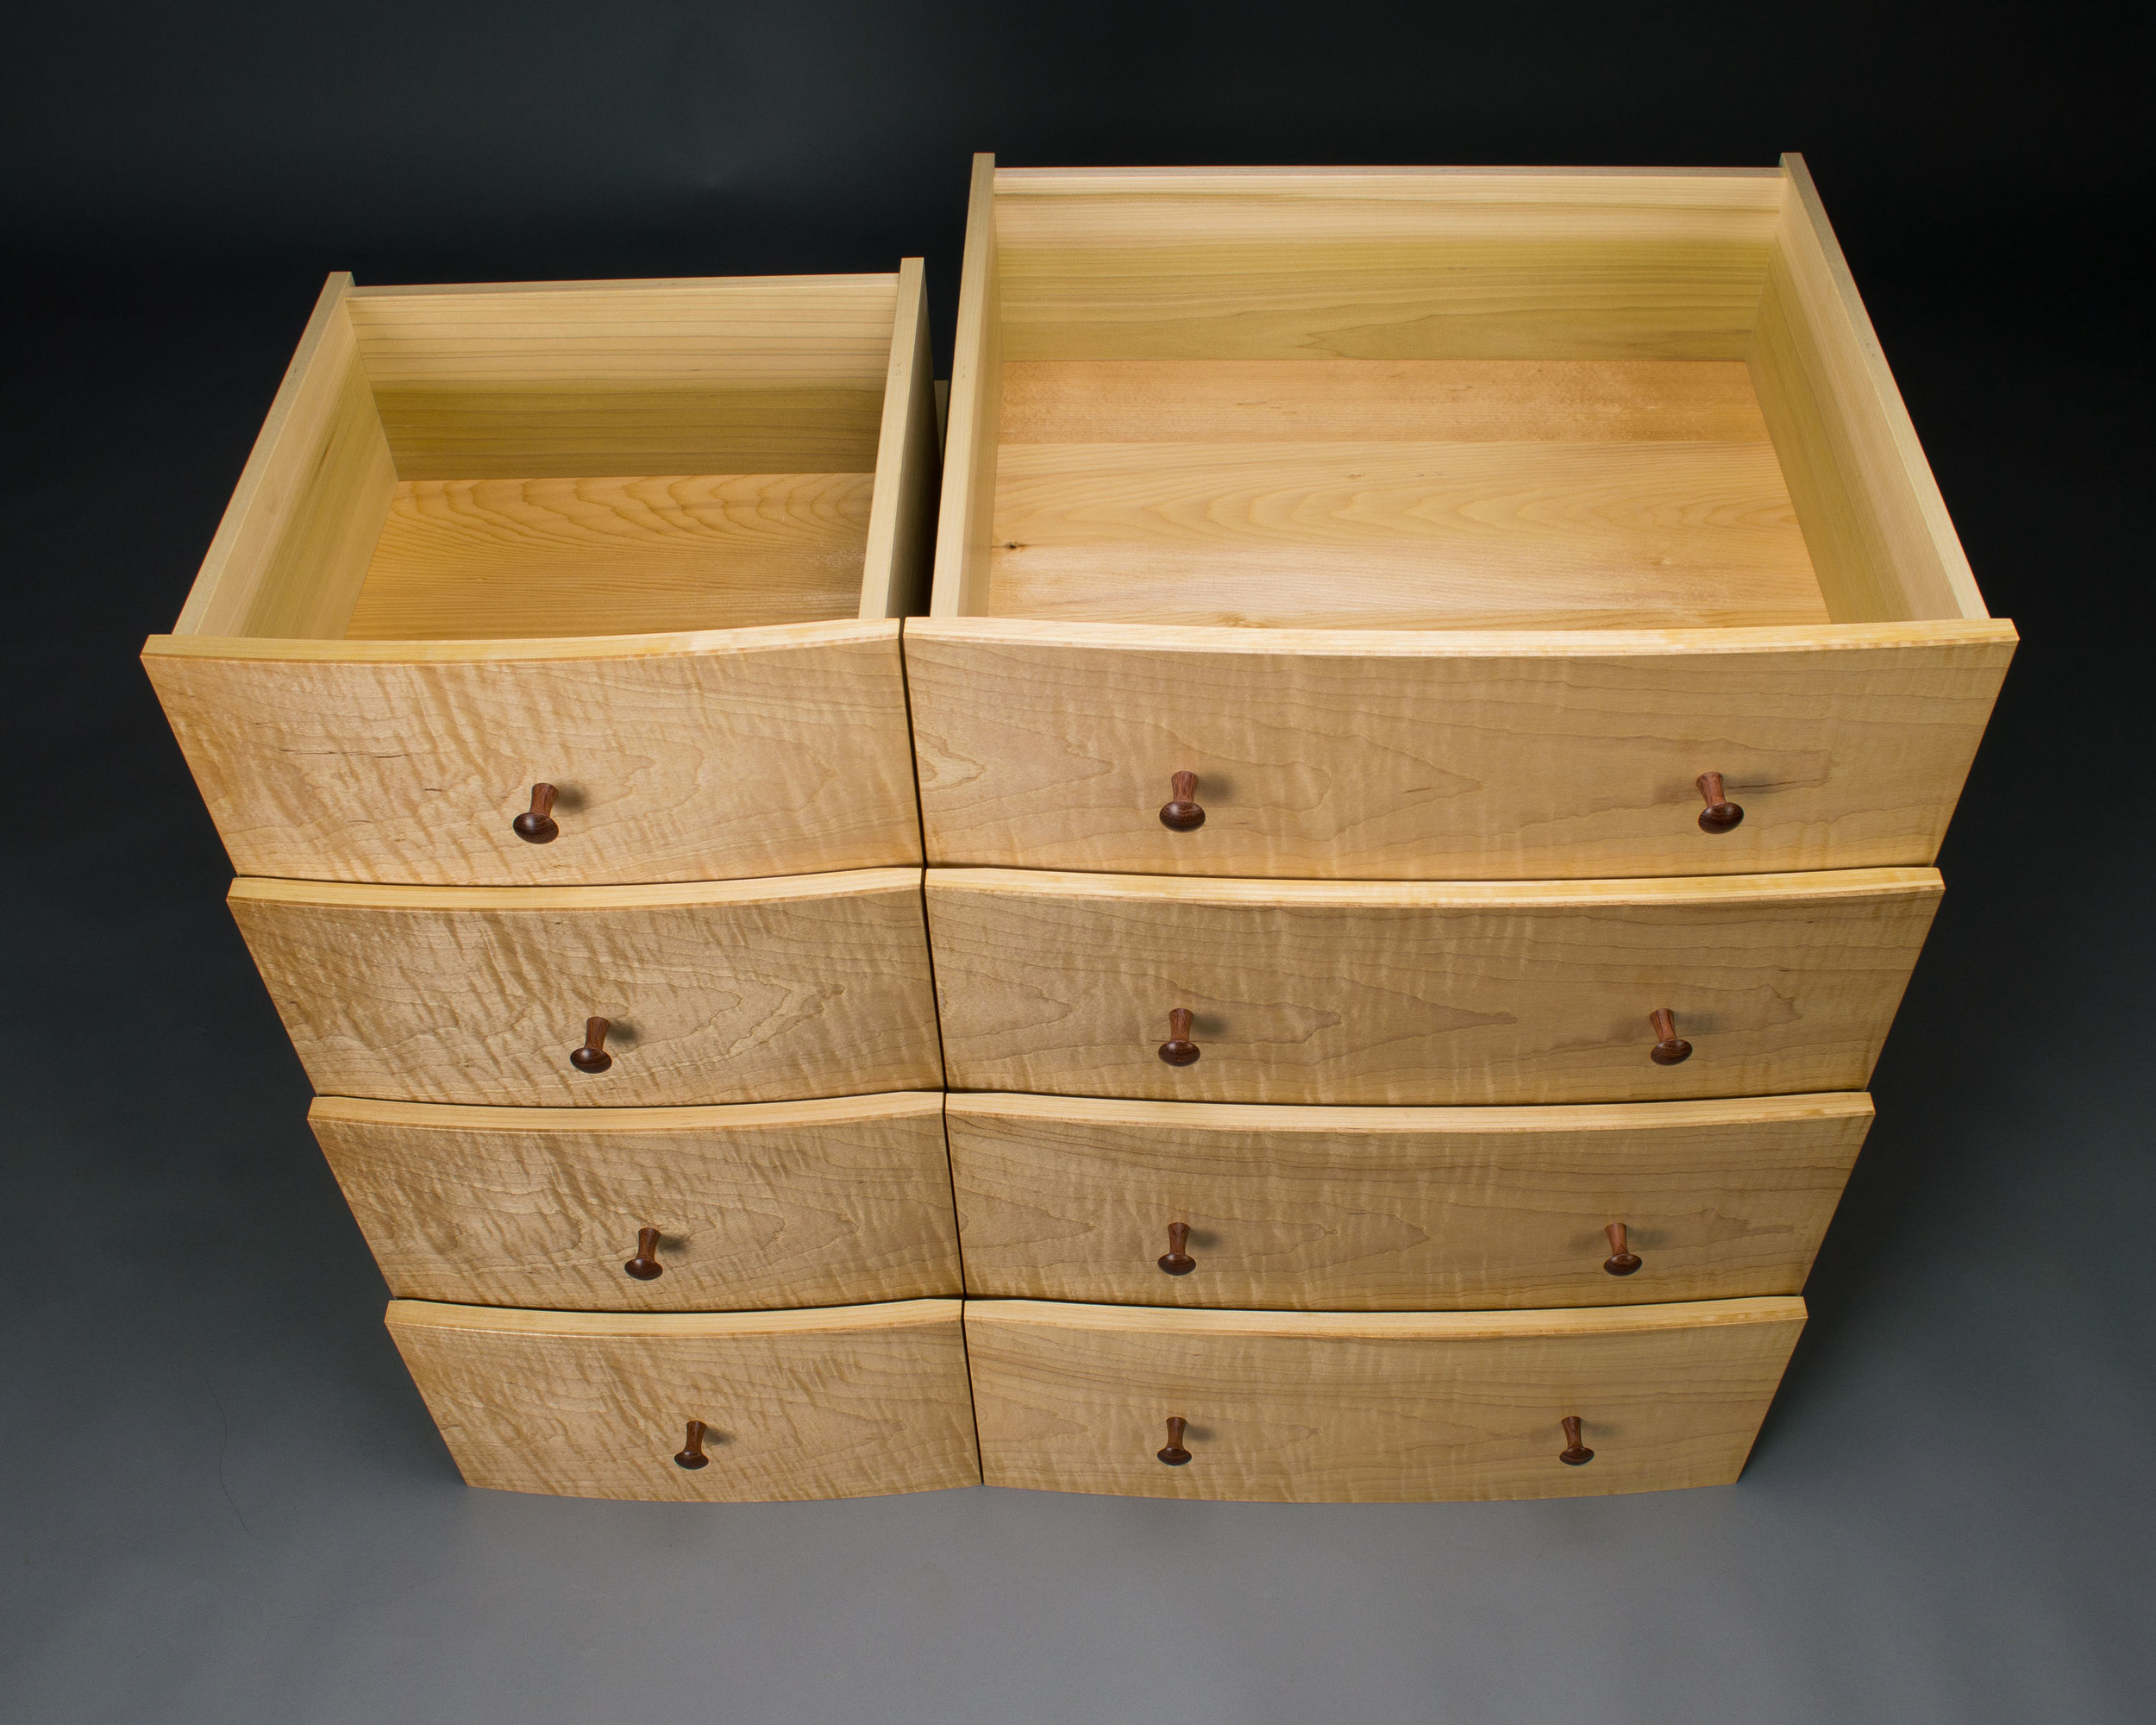 The top left drawer is shortened to make room for the hidden compartment.